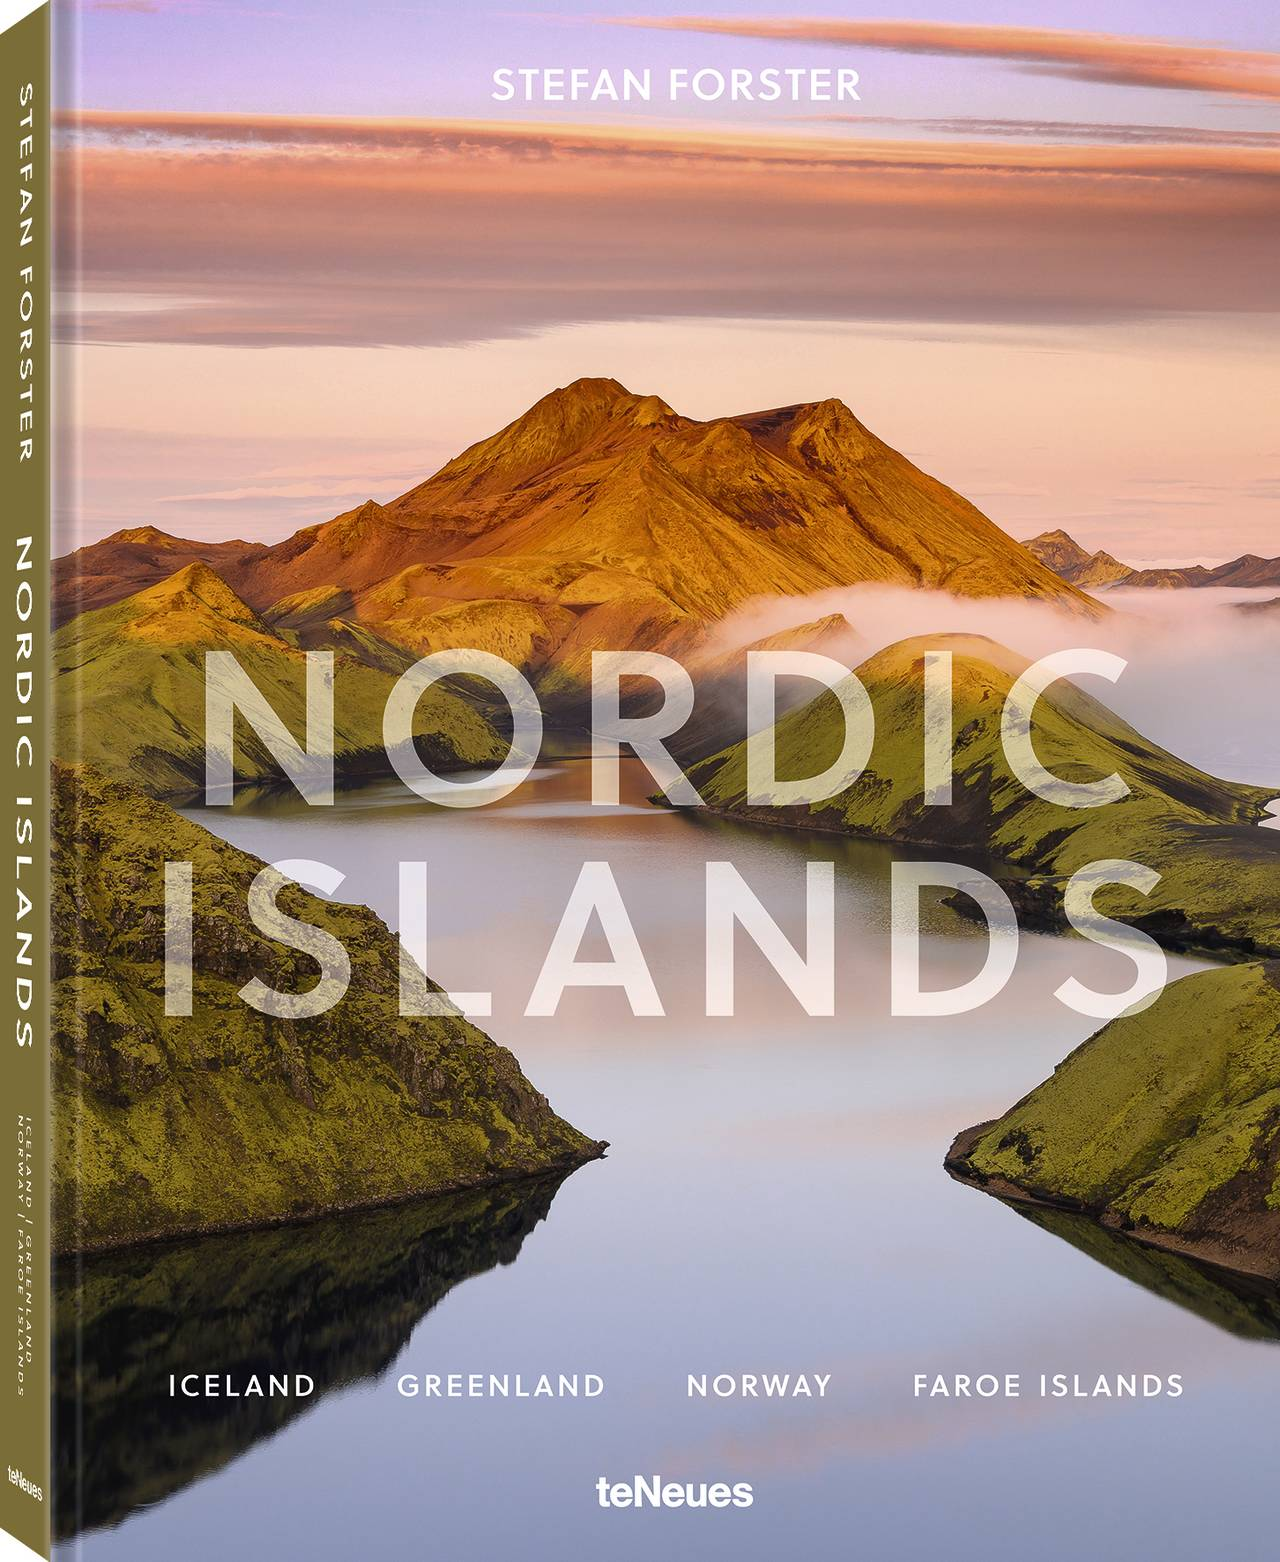 © Nordic Islands by Stefan Forster, published by teNeues, www.teneues.com, ICELAND, Photo © 2020 Stefan Forster. All rights reserved.